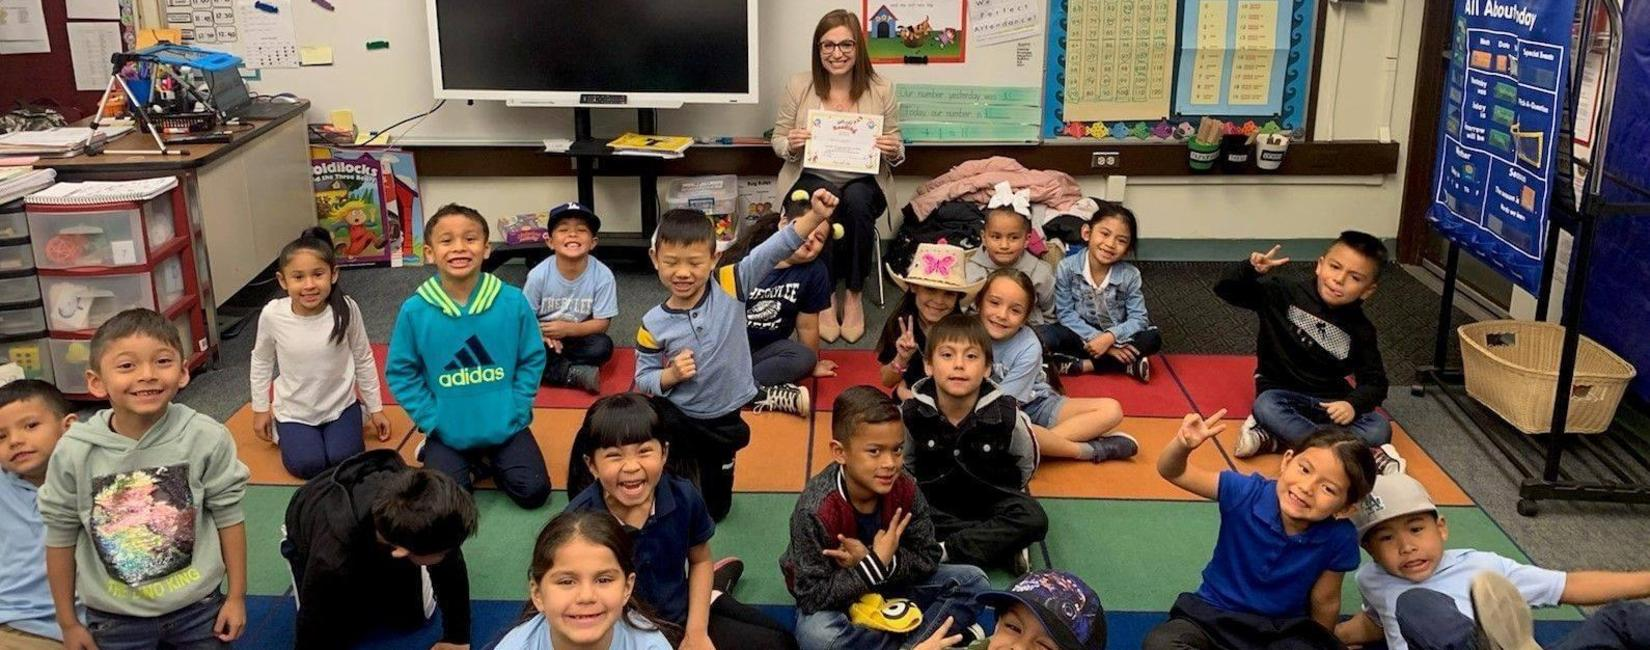 Assistant Superintendent Virginia Castro poses with students for group photo after read-along (photo from 2019)